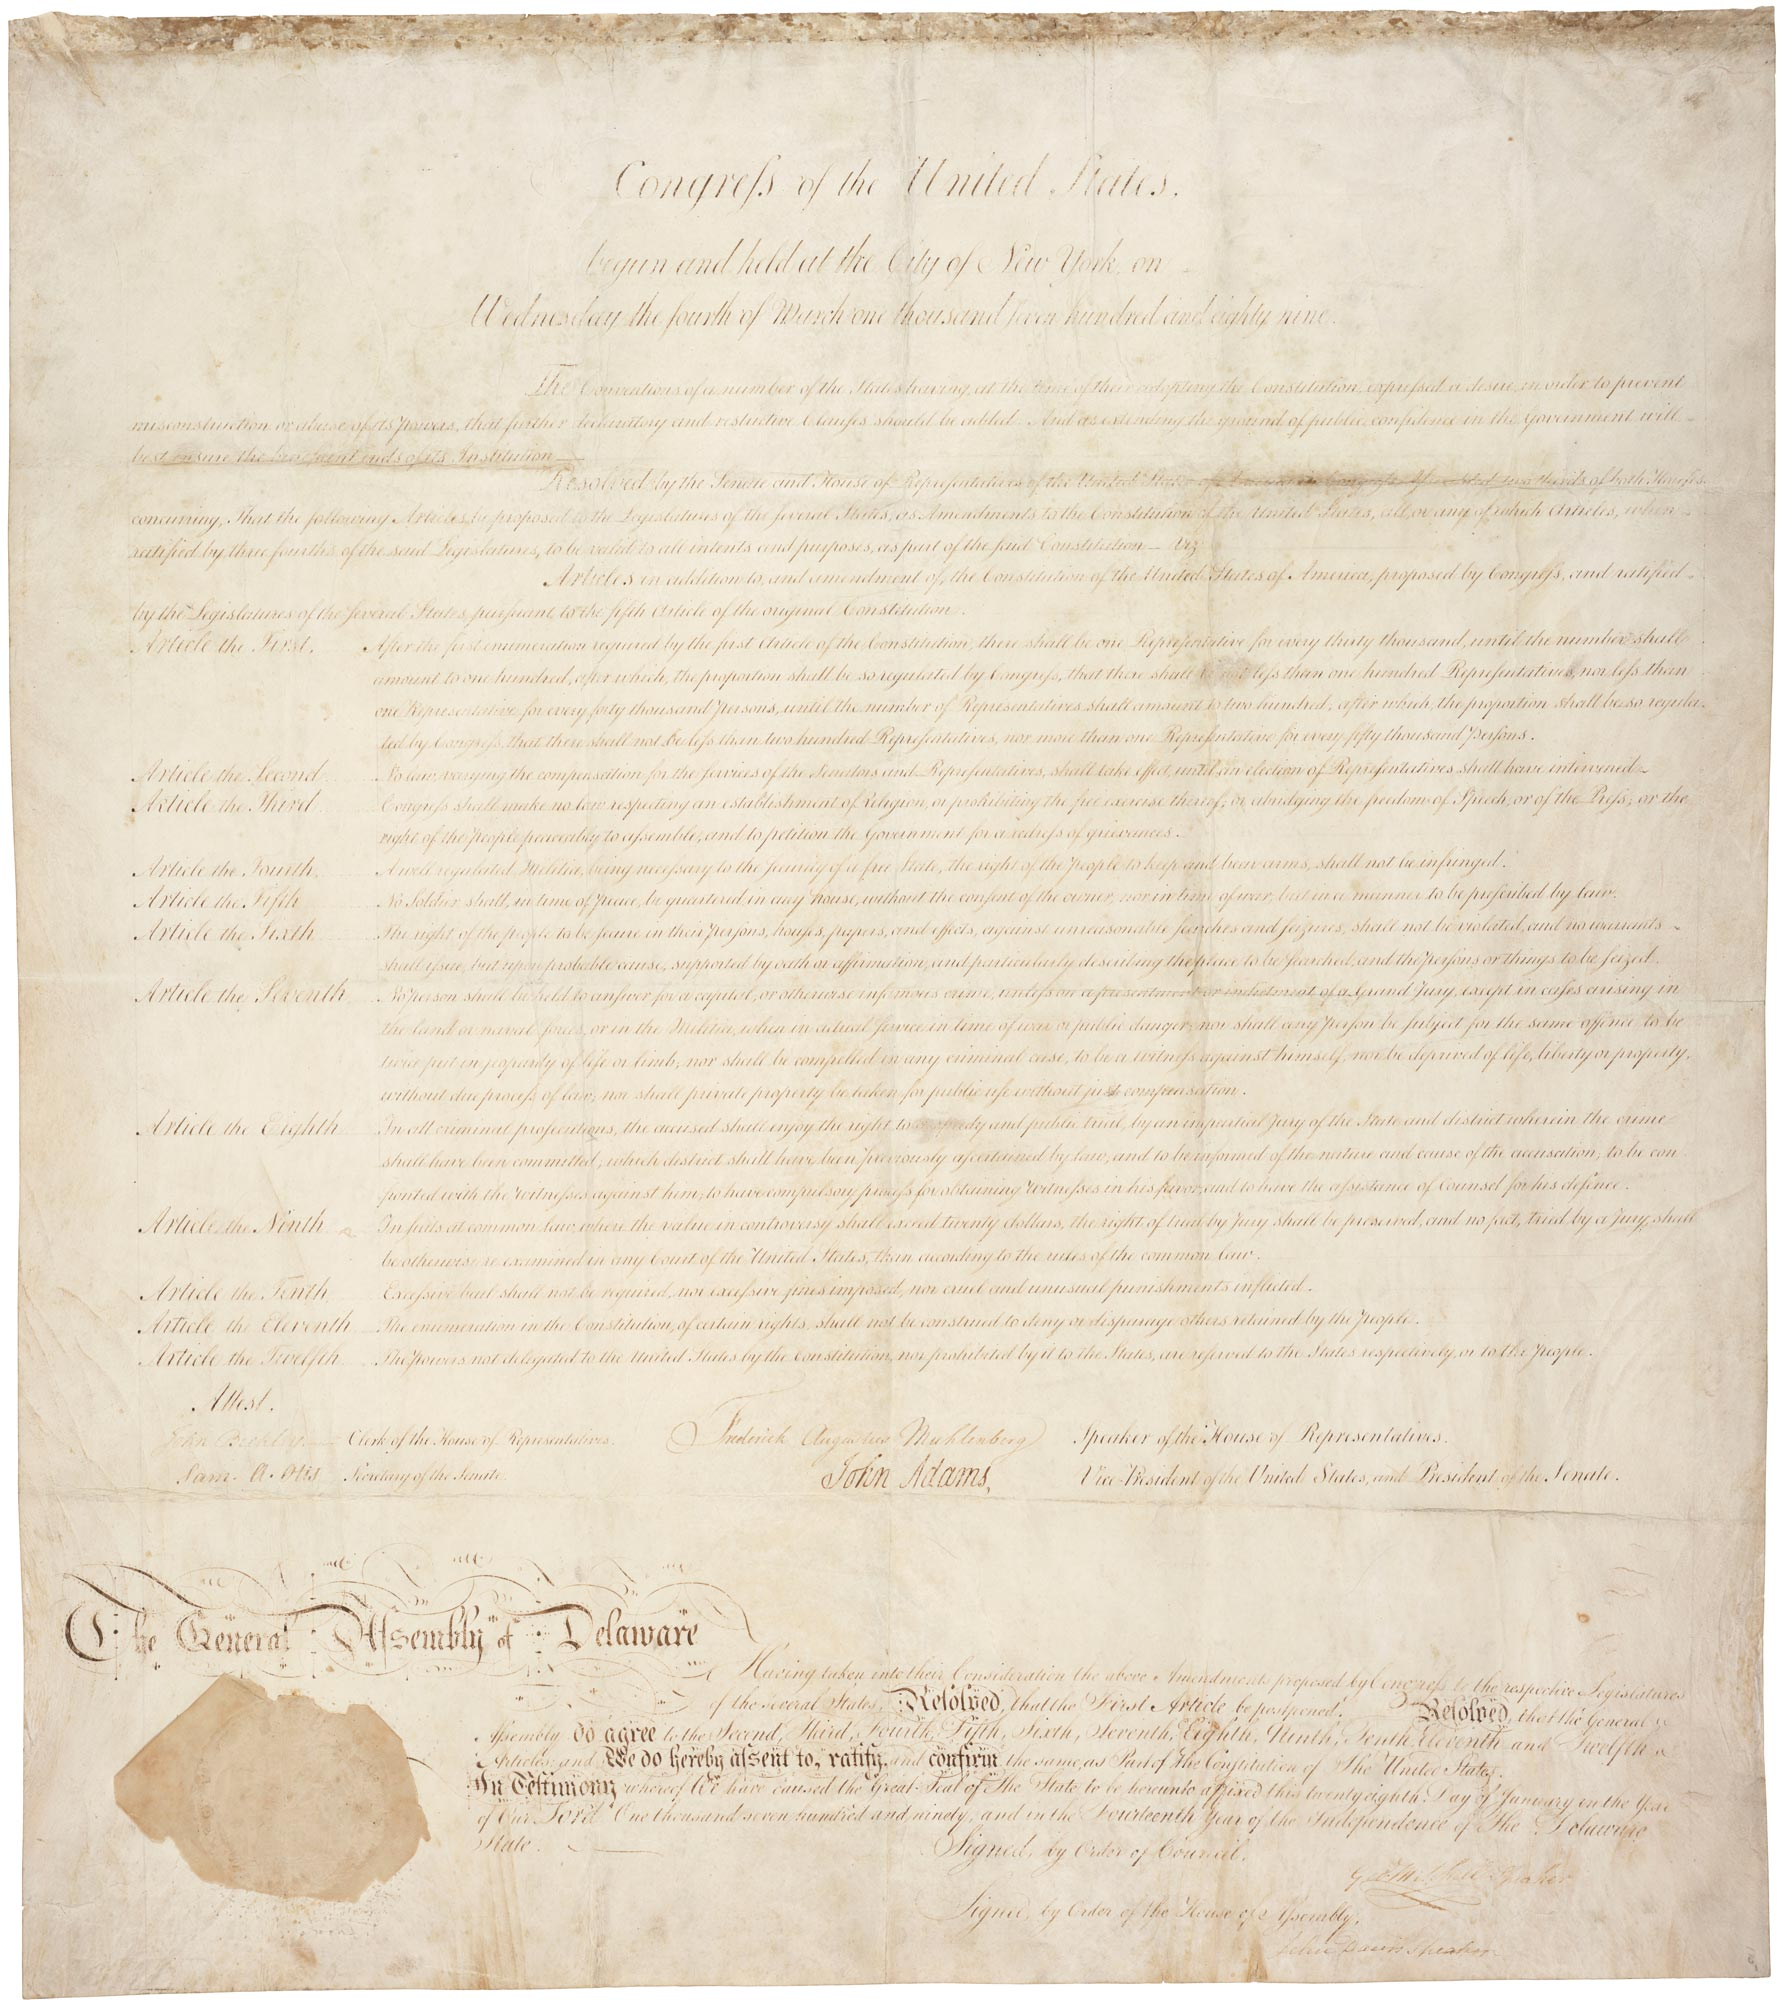 Delaware copy of the United States Bill of Rights